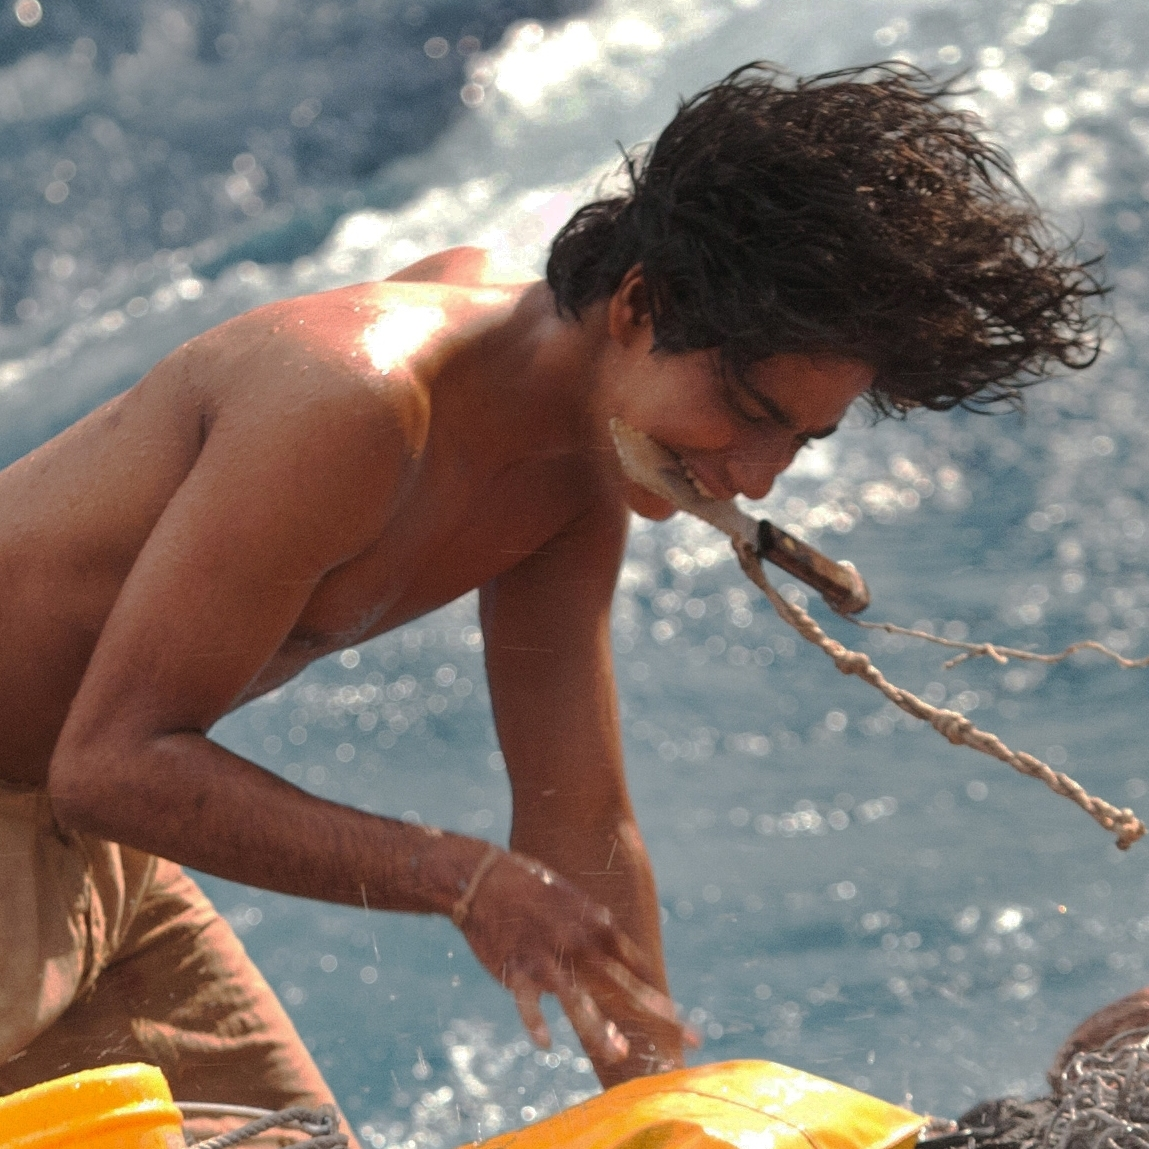 Callahan helped actor Suraj Sharma, who played Pi in the film, to convey the psychological distress of being stranded at sea.